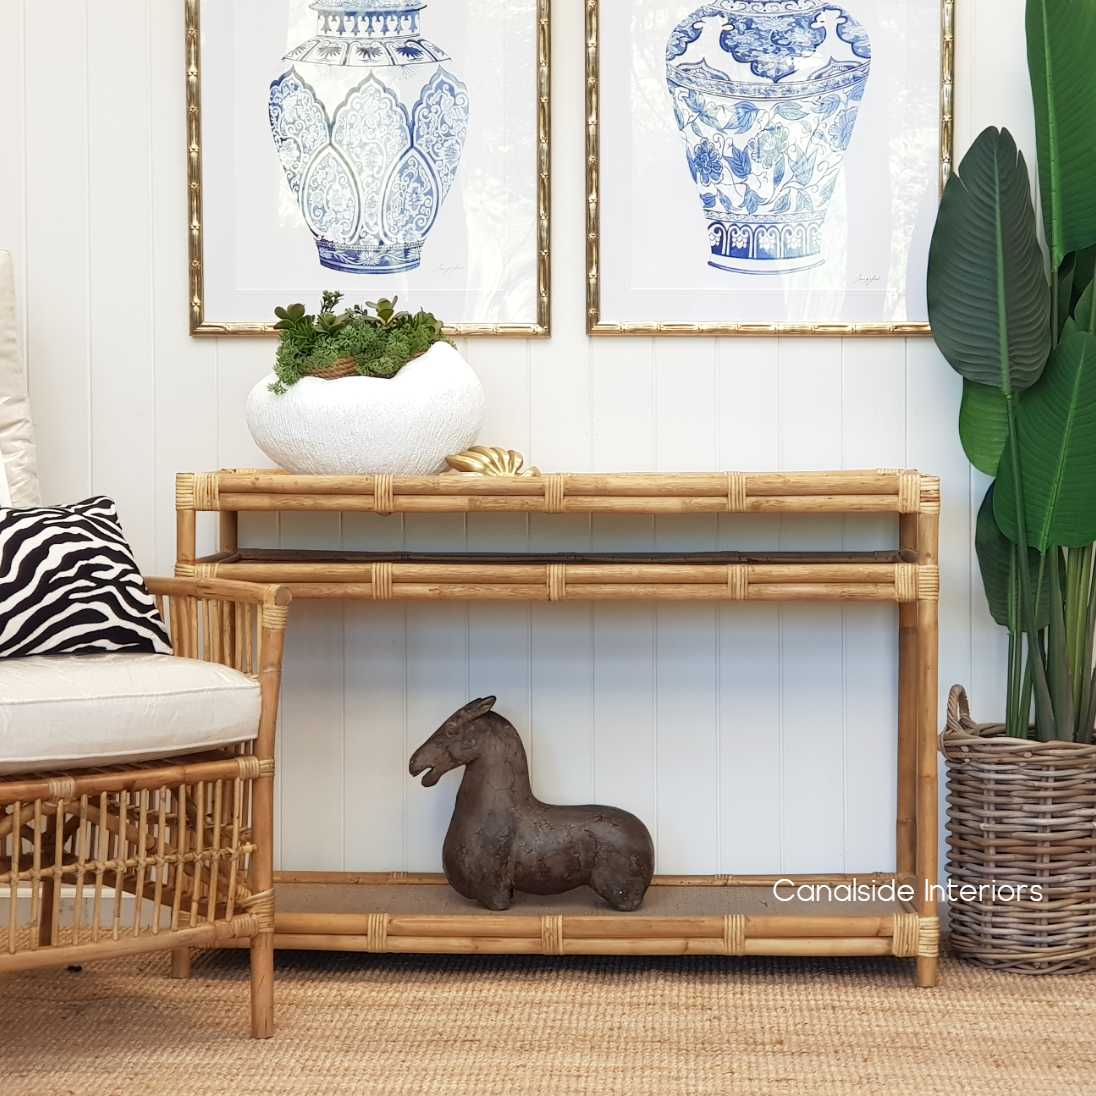 Raffles Cane Rattan Console, HAMPTONS Style, PLANTATION Style, LIVING Room, PLANTATION STYLE Rattan Island living, british colonial STORAGE Consoles Entryway Living Room Entry table